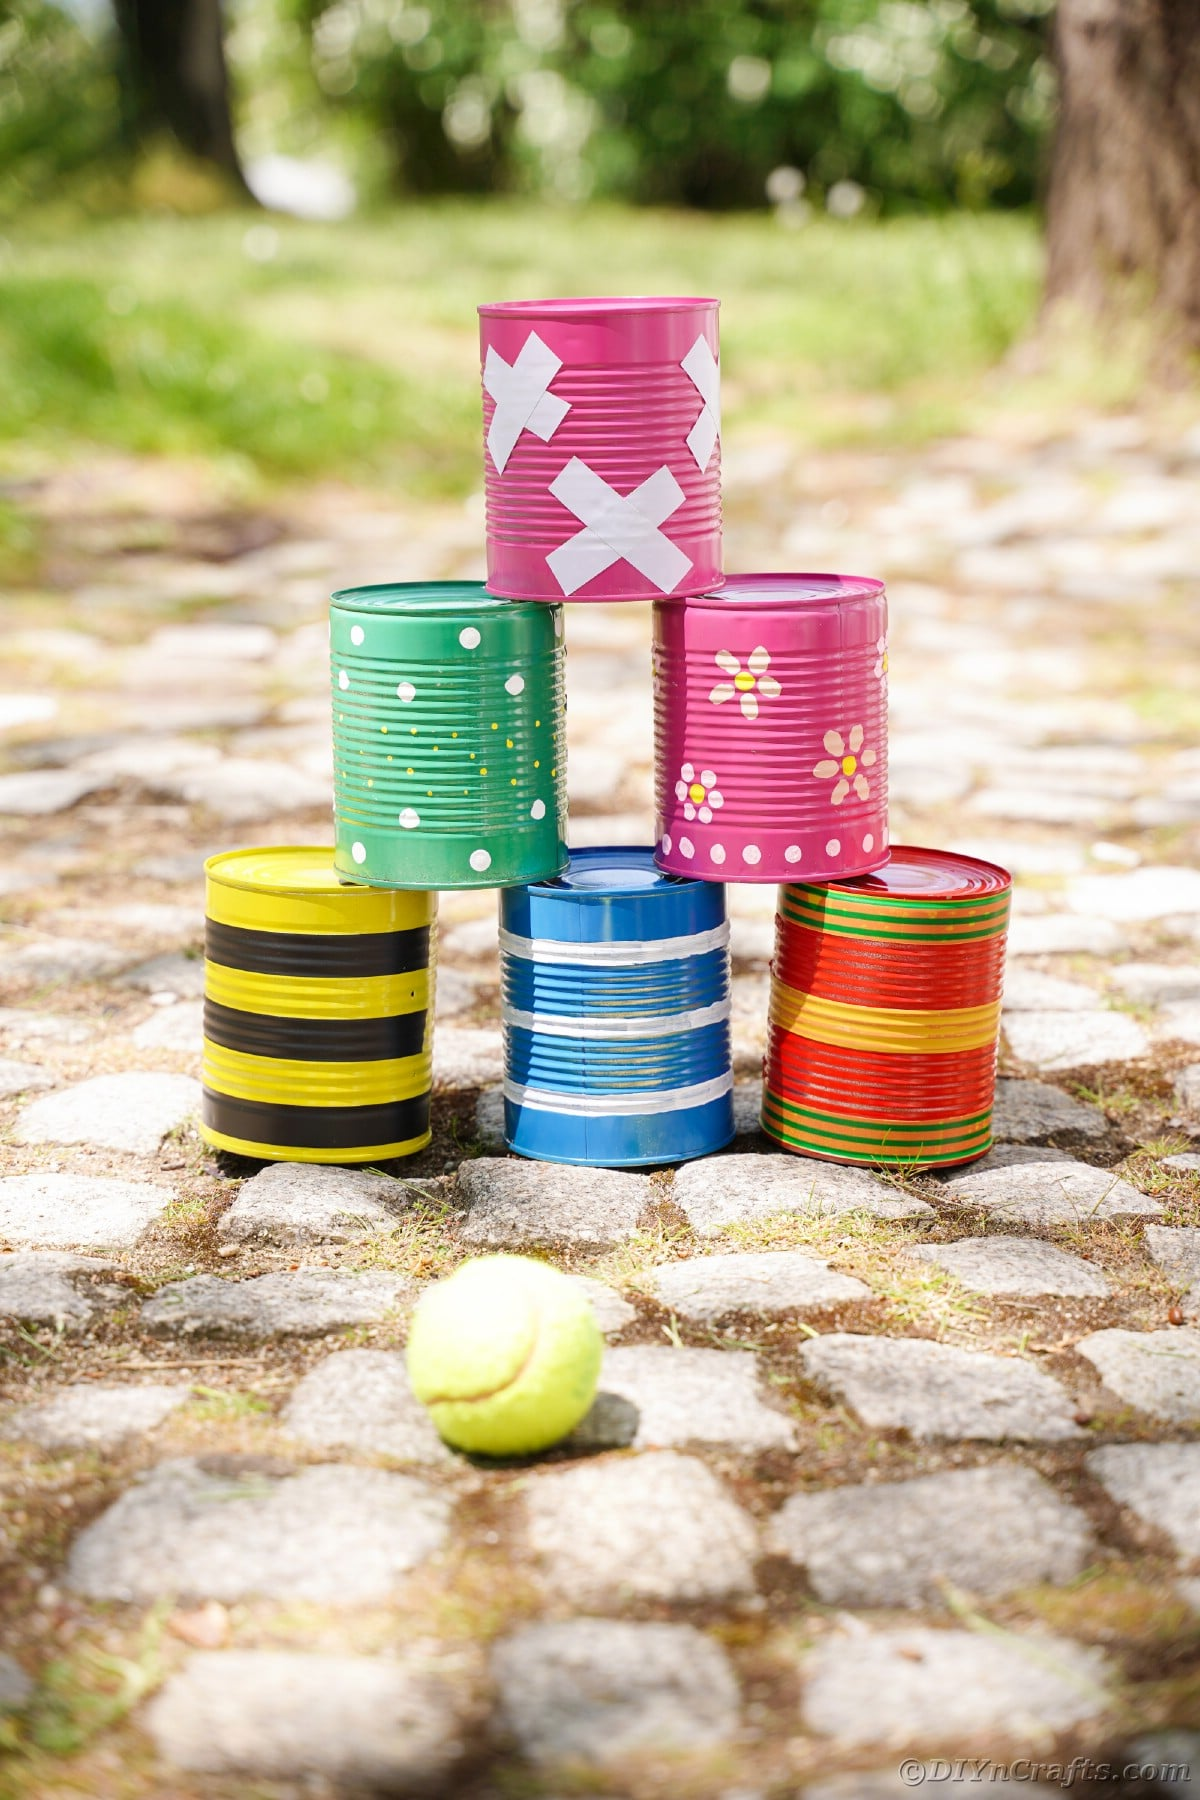 Stacked tin cans on cobblestone